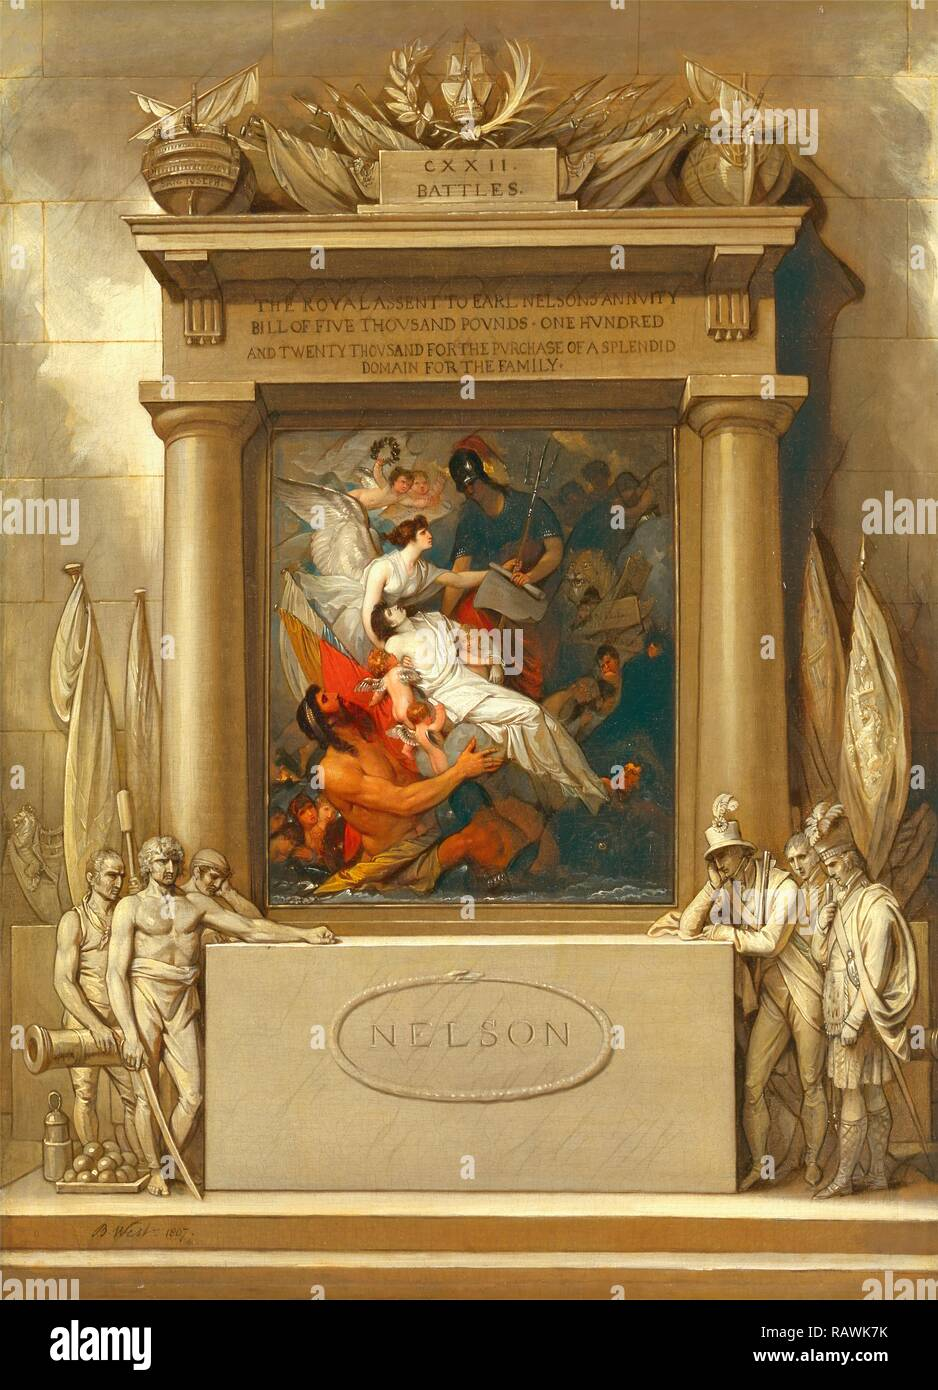 The Apotheosis of Nelson Project for a Monument, 'The